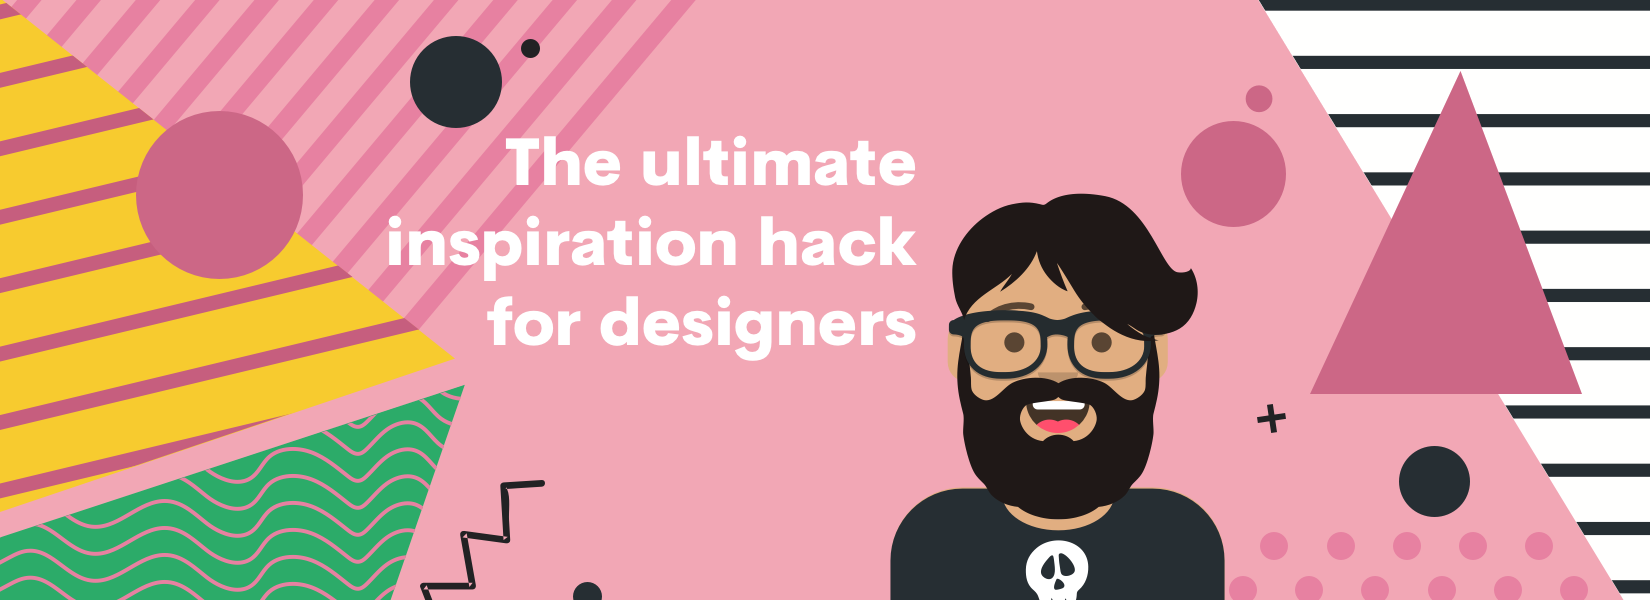 The ultimate inspiration hack for designers